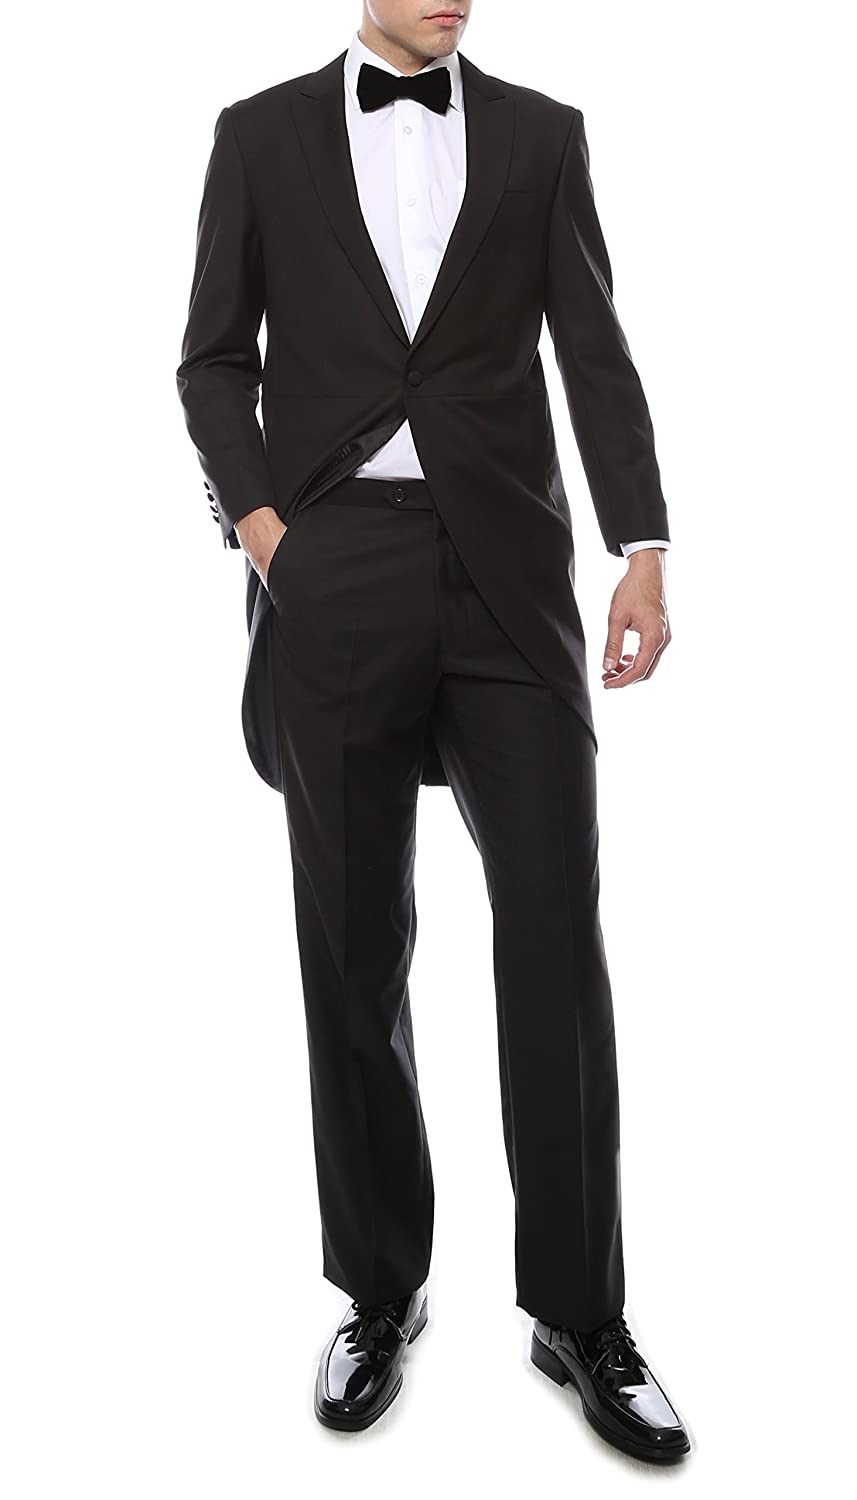 Victorian Men's Tuxedo, Tailcoats, Formalwear Guide Victorian Tail Tuxedo  AT vintagedancer.com